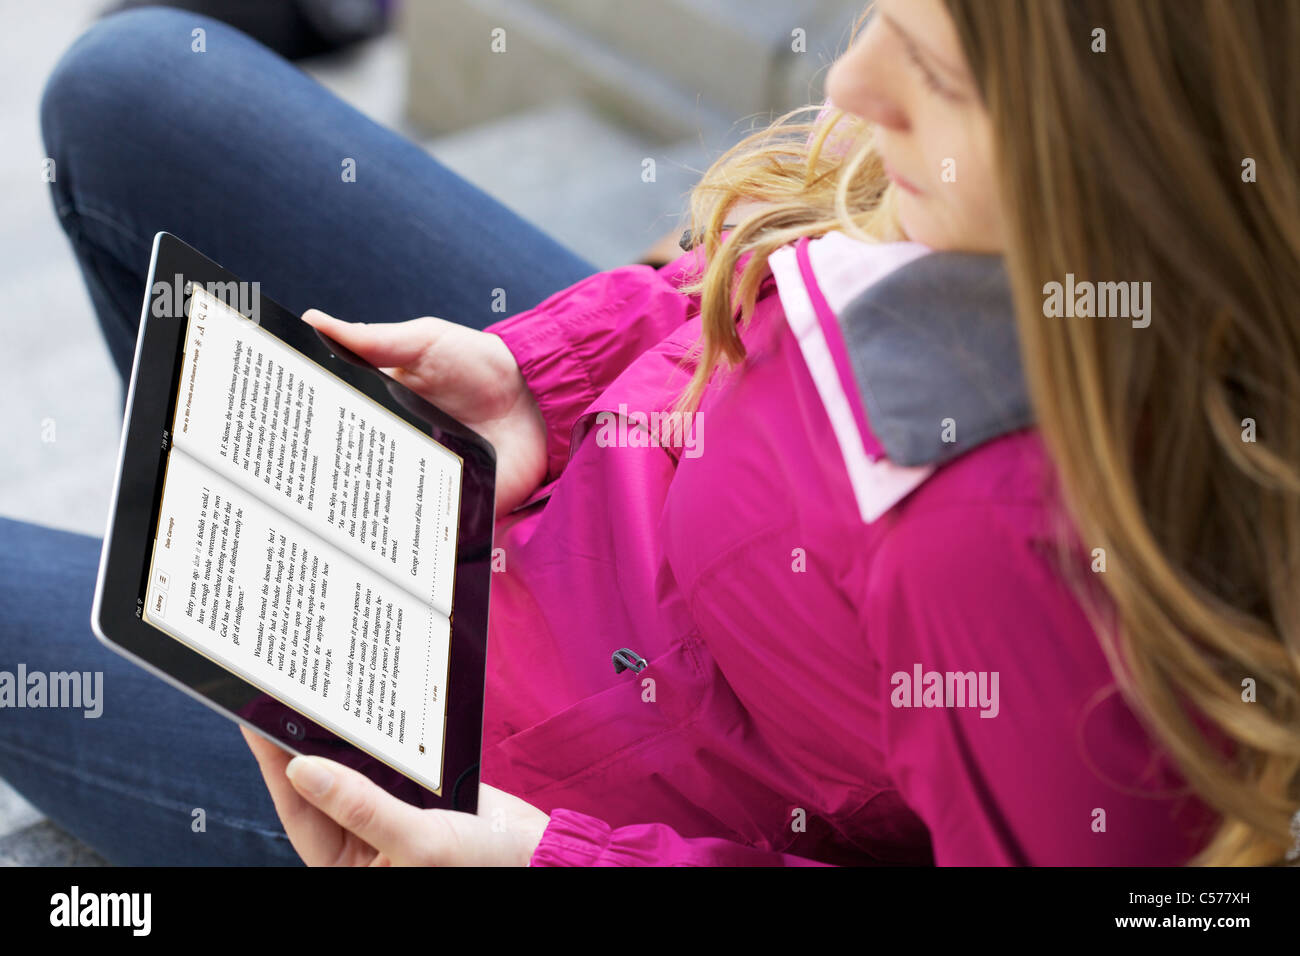 Young caucasian woman reading 'How to Win Friends and Influence People' from iBooks application on an iPad - Stock Image